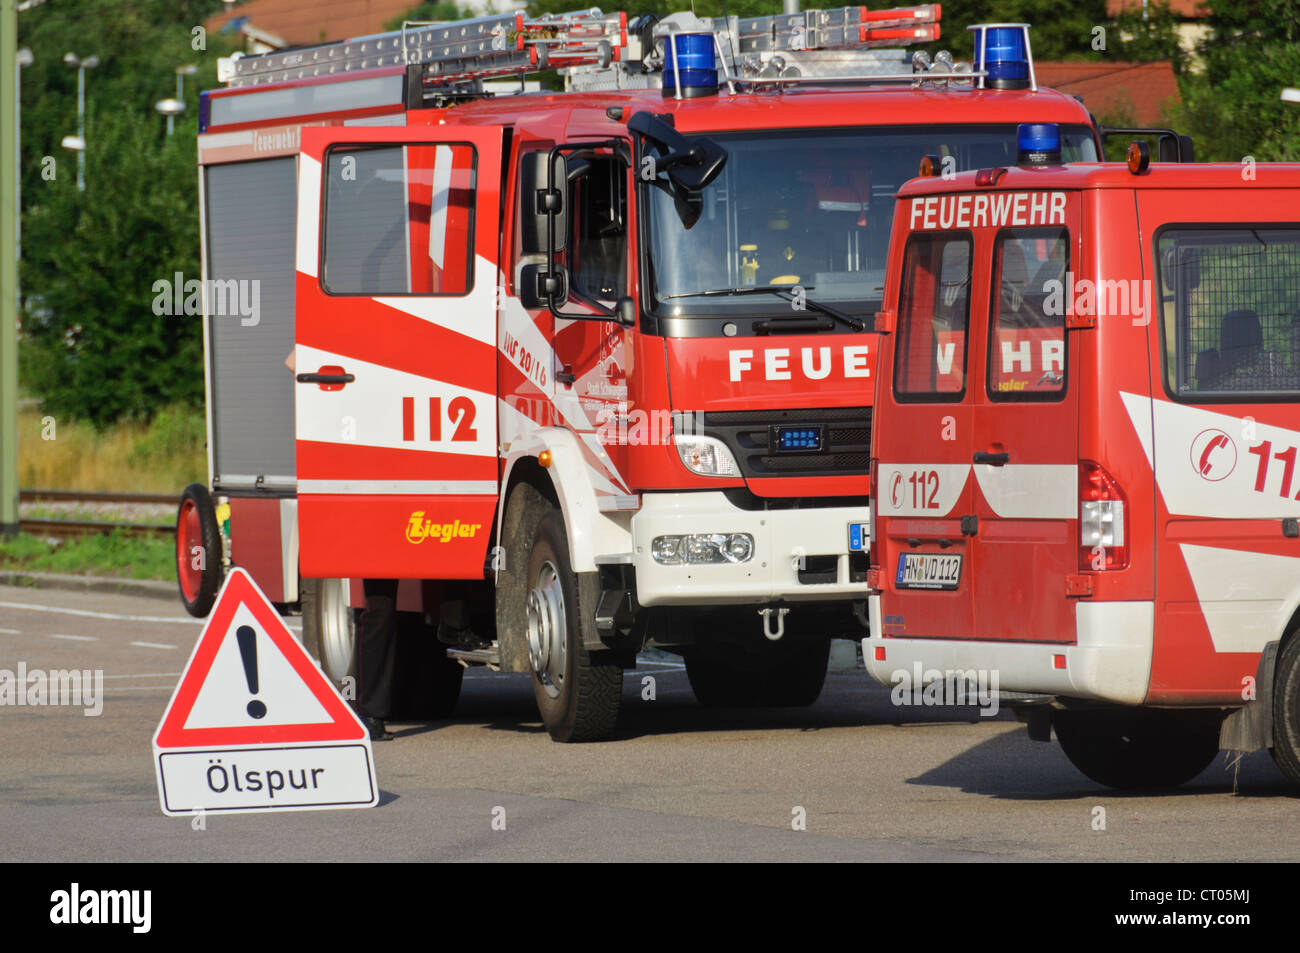 German Fire Trucks Fire Engines Mercedes Benz Voluntary Auxiliary Fire Brigade 112 - Schwaigern Heilbronn Germany - Stock Image